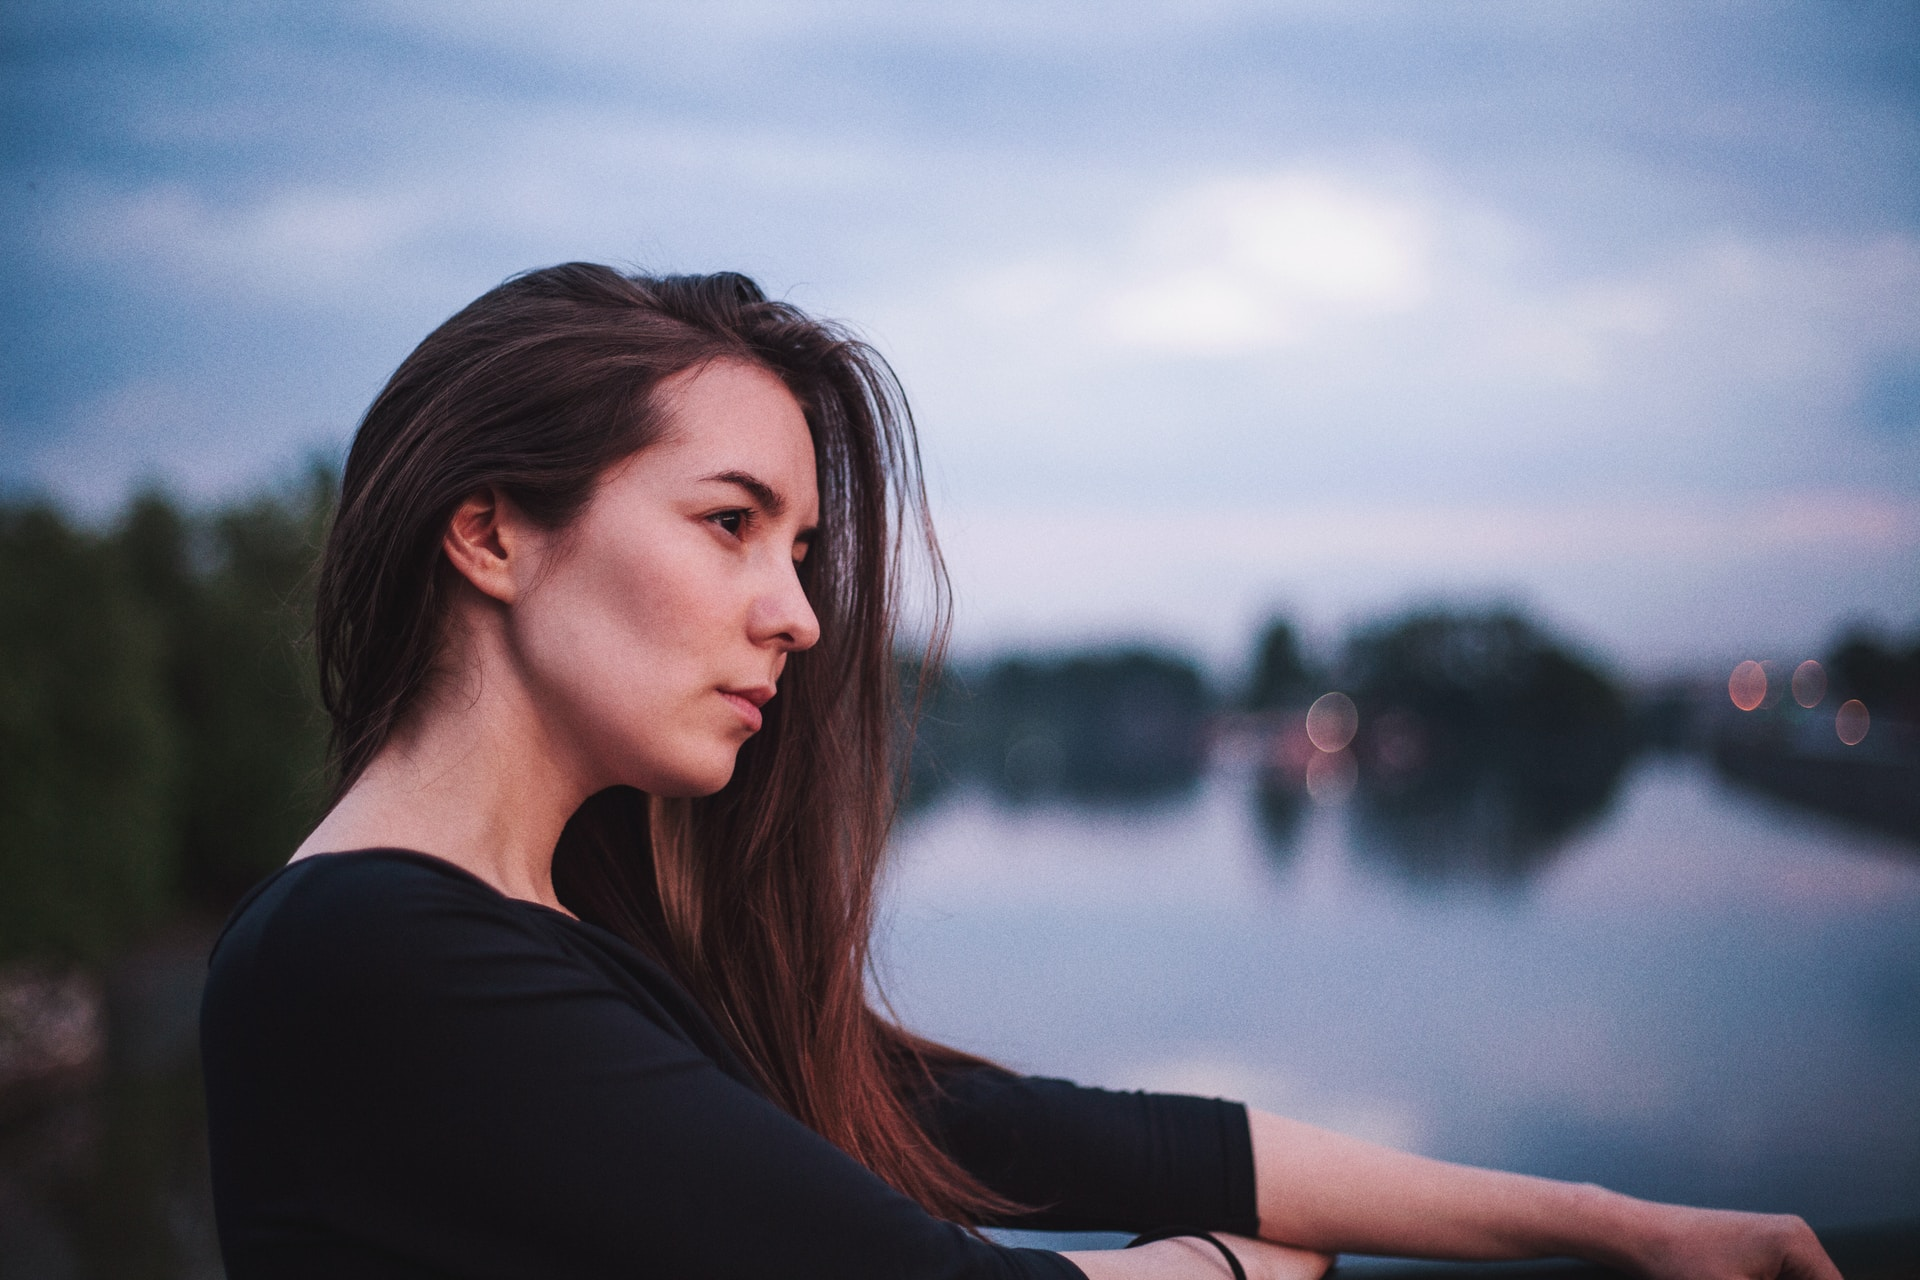 depth photography of woman in 3/4-sleeved top near body of water